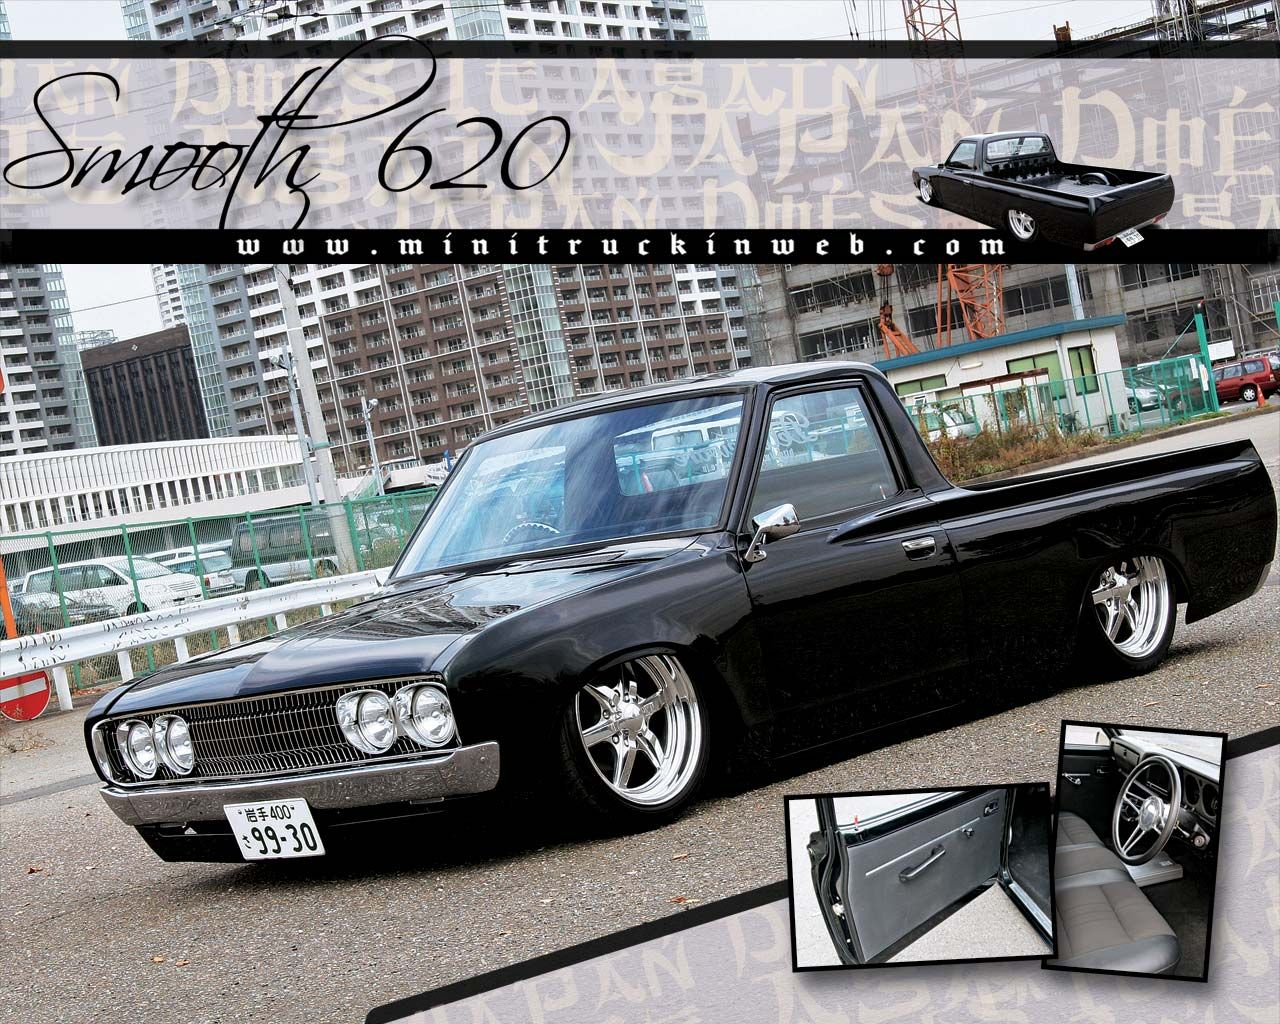 76 datsun pickups for sale the datsun 620 is one of the most beautiful - Read About This Custom 1979 Datsun 620 Mini Truck Out Of Akita Japan Featuring Air Ride Suspension And A Body Drop At Mini Truckin Magazine